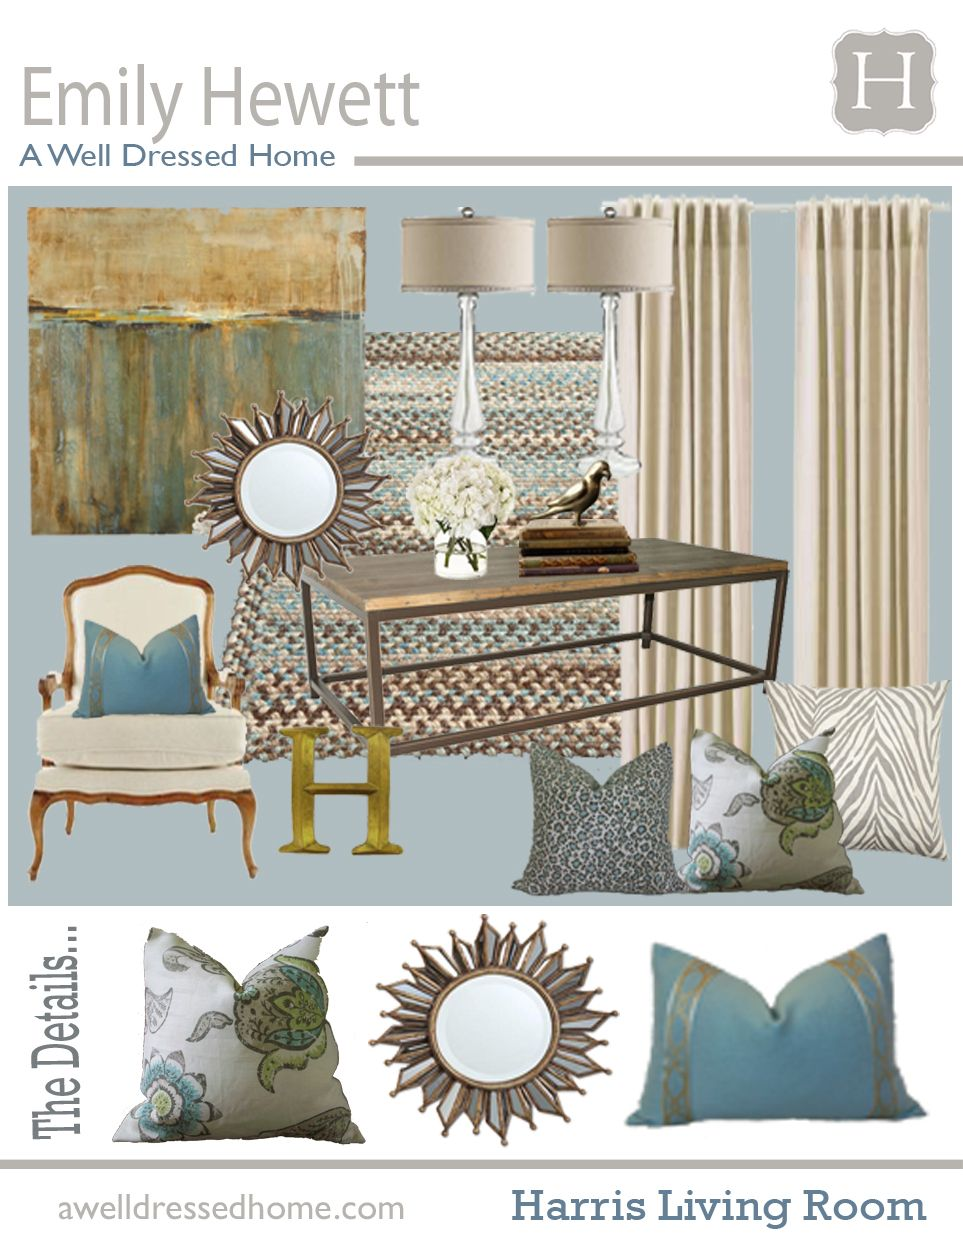 Decorate A Room Online: Harris Living Room Online Design Board By Emily Hewett Of